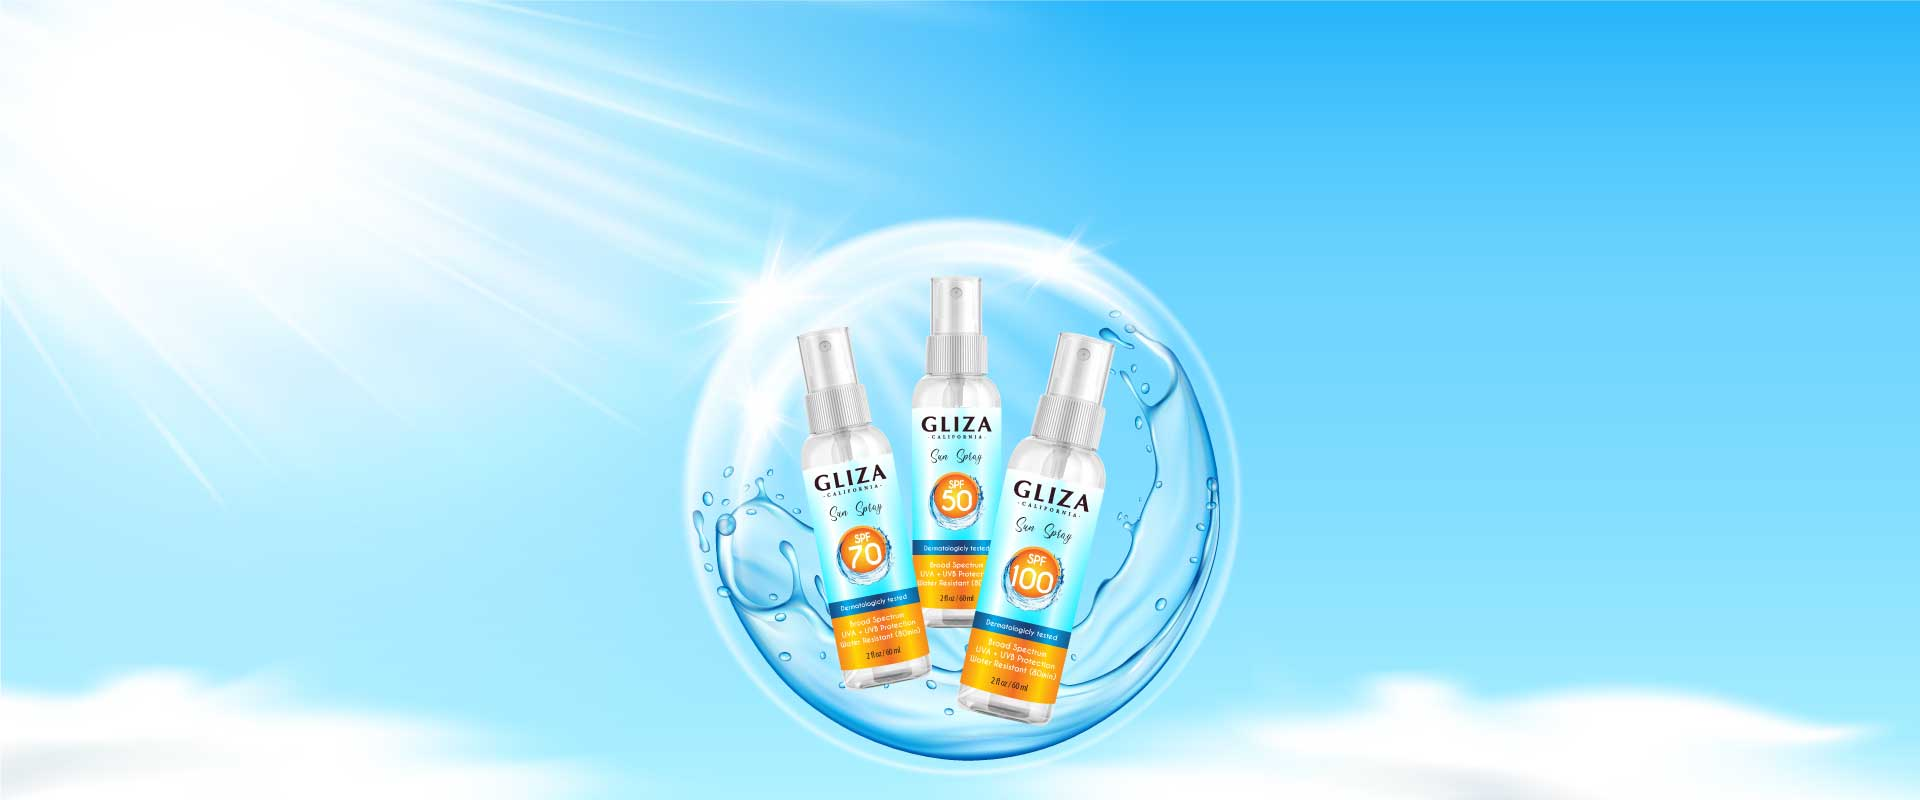 Gliza-Sun-Spray-Web-Banner